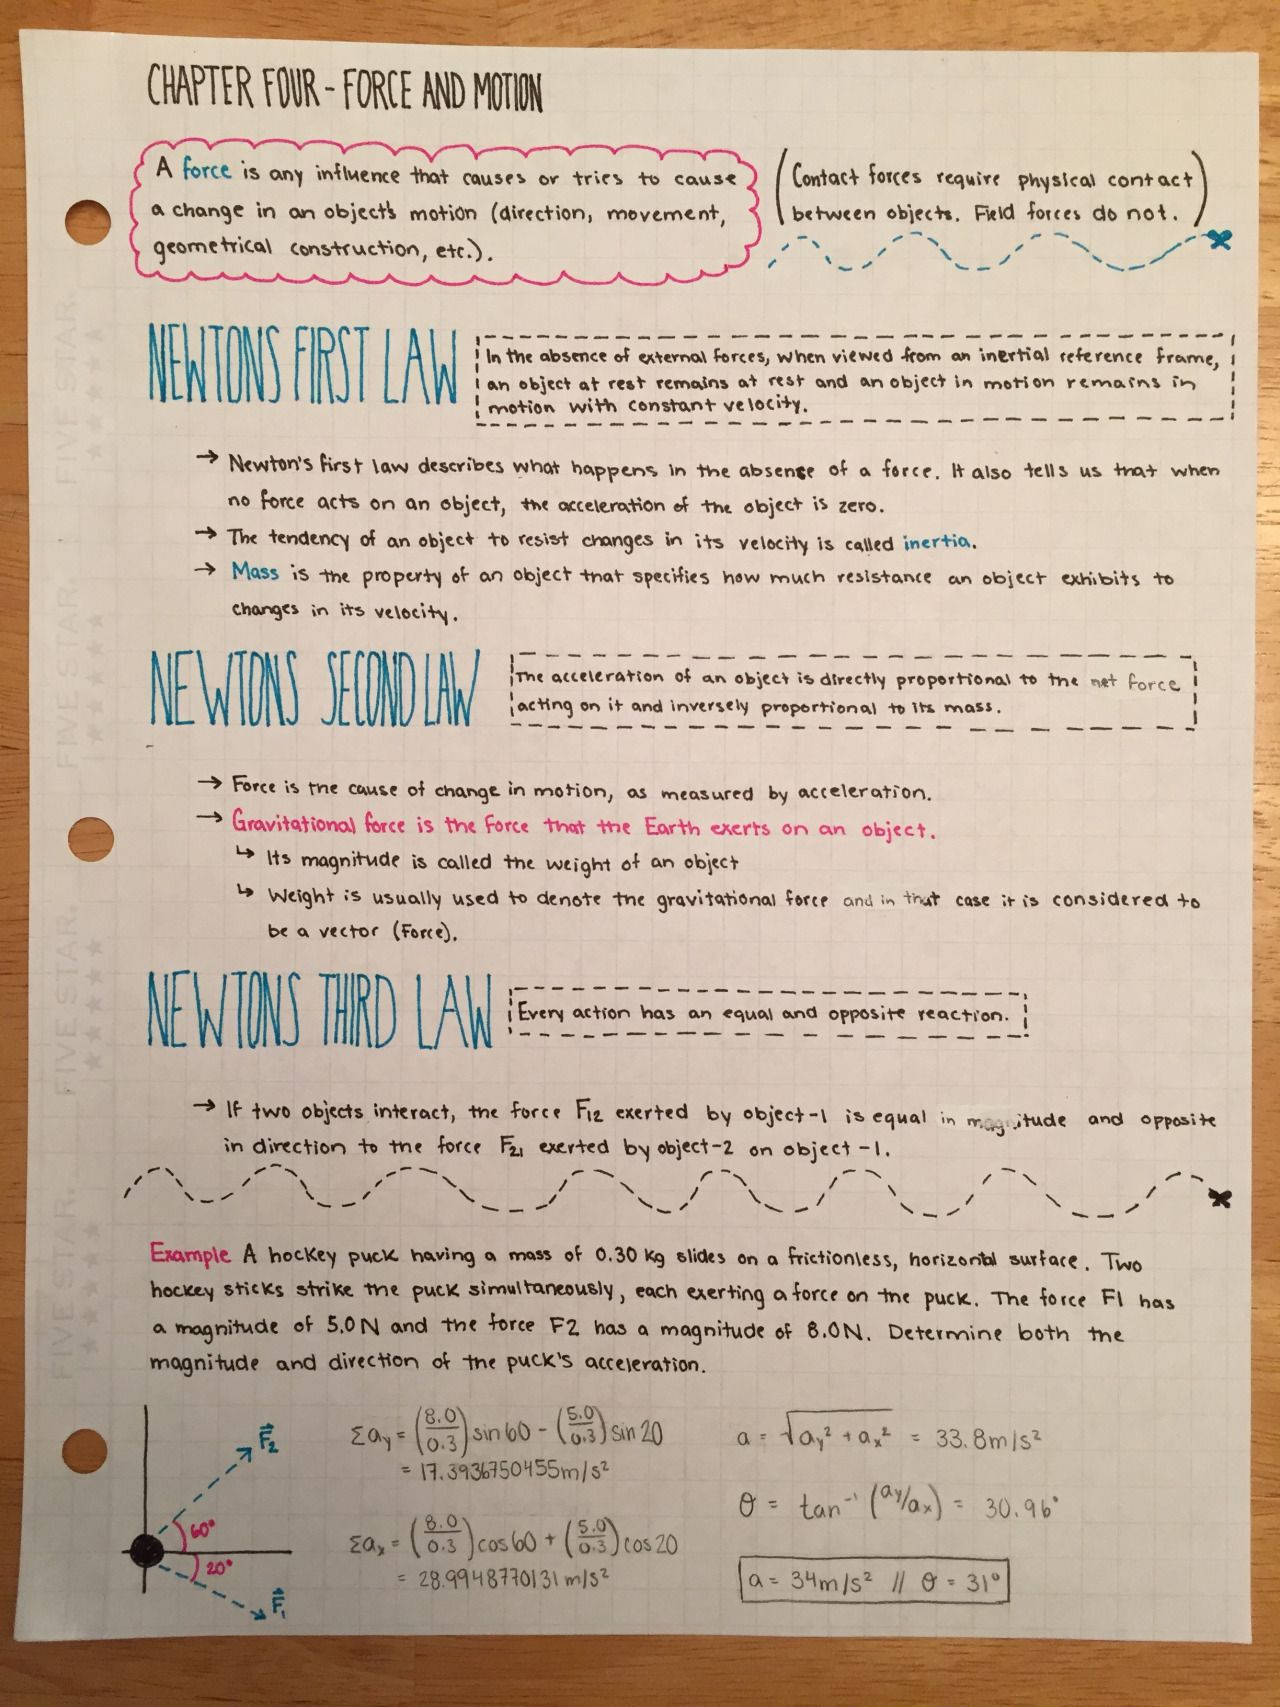 Notes school hacks school tips physics notes study notes note taking